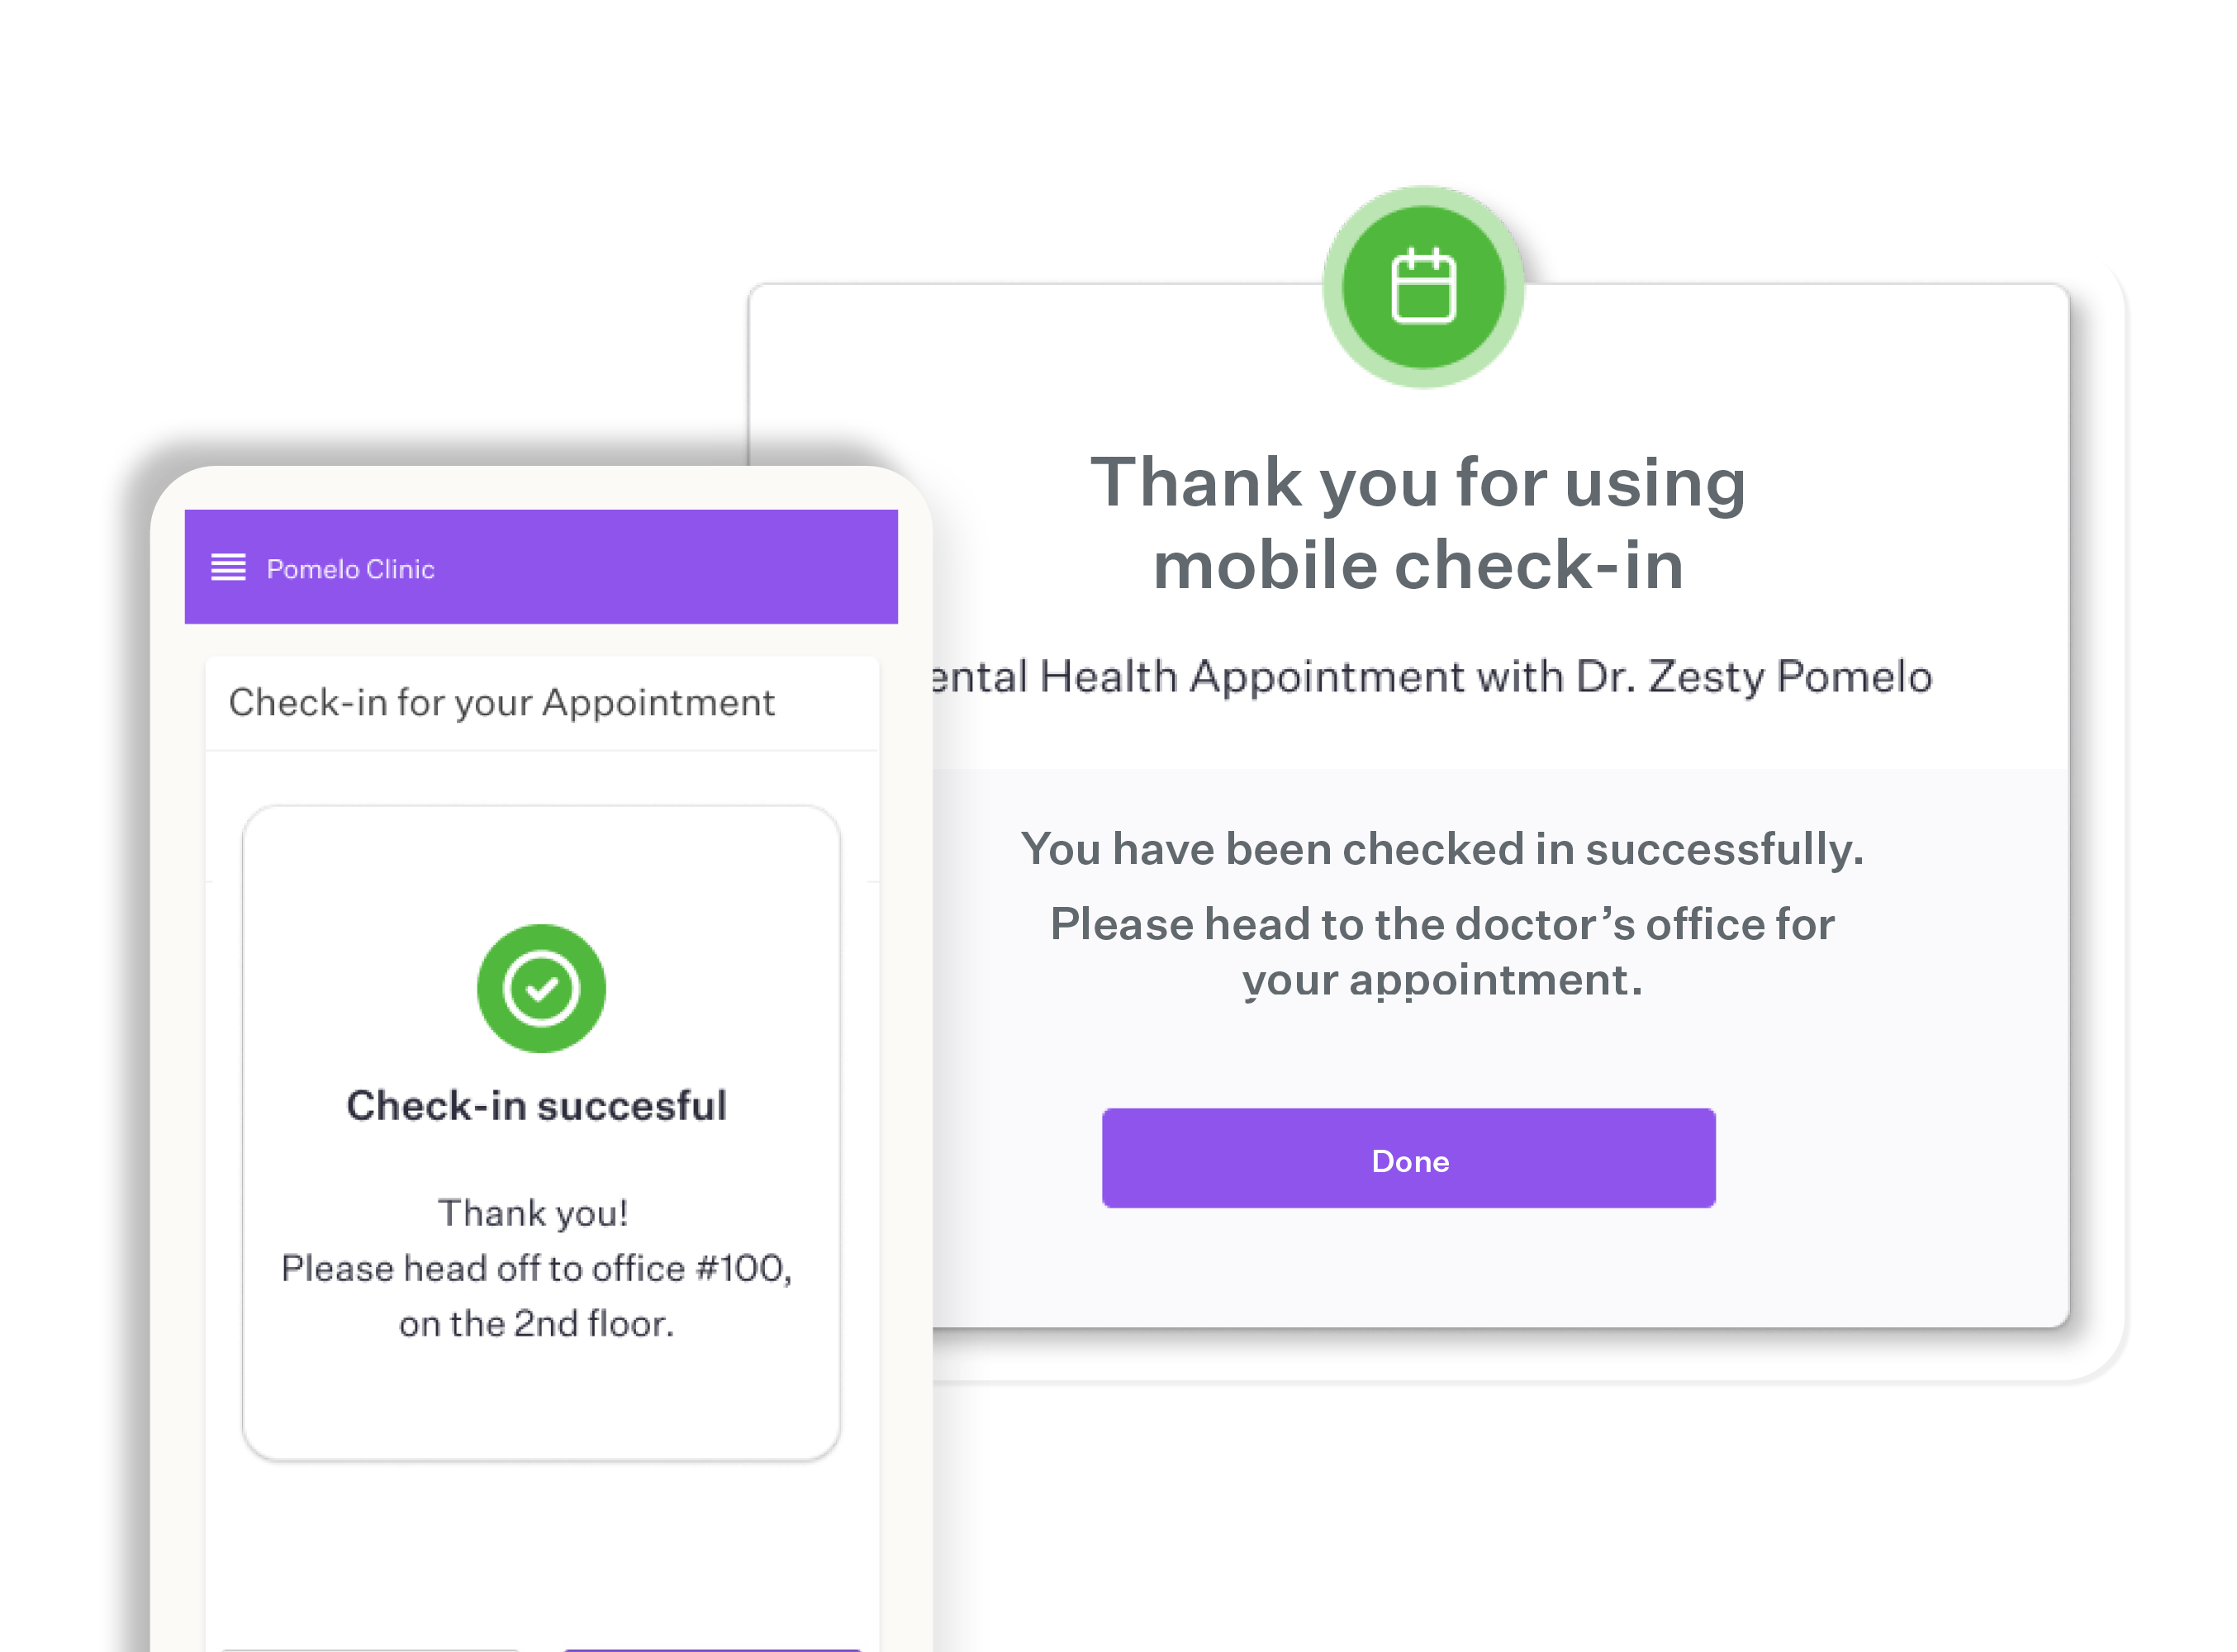 Mobile check-in software - Custom check-in instructions